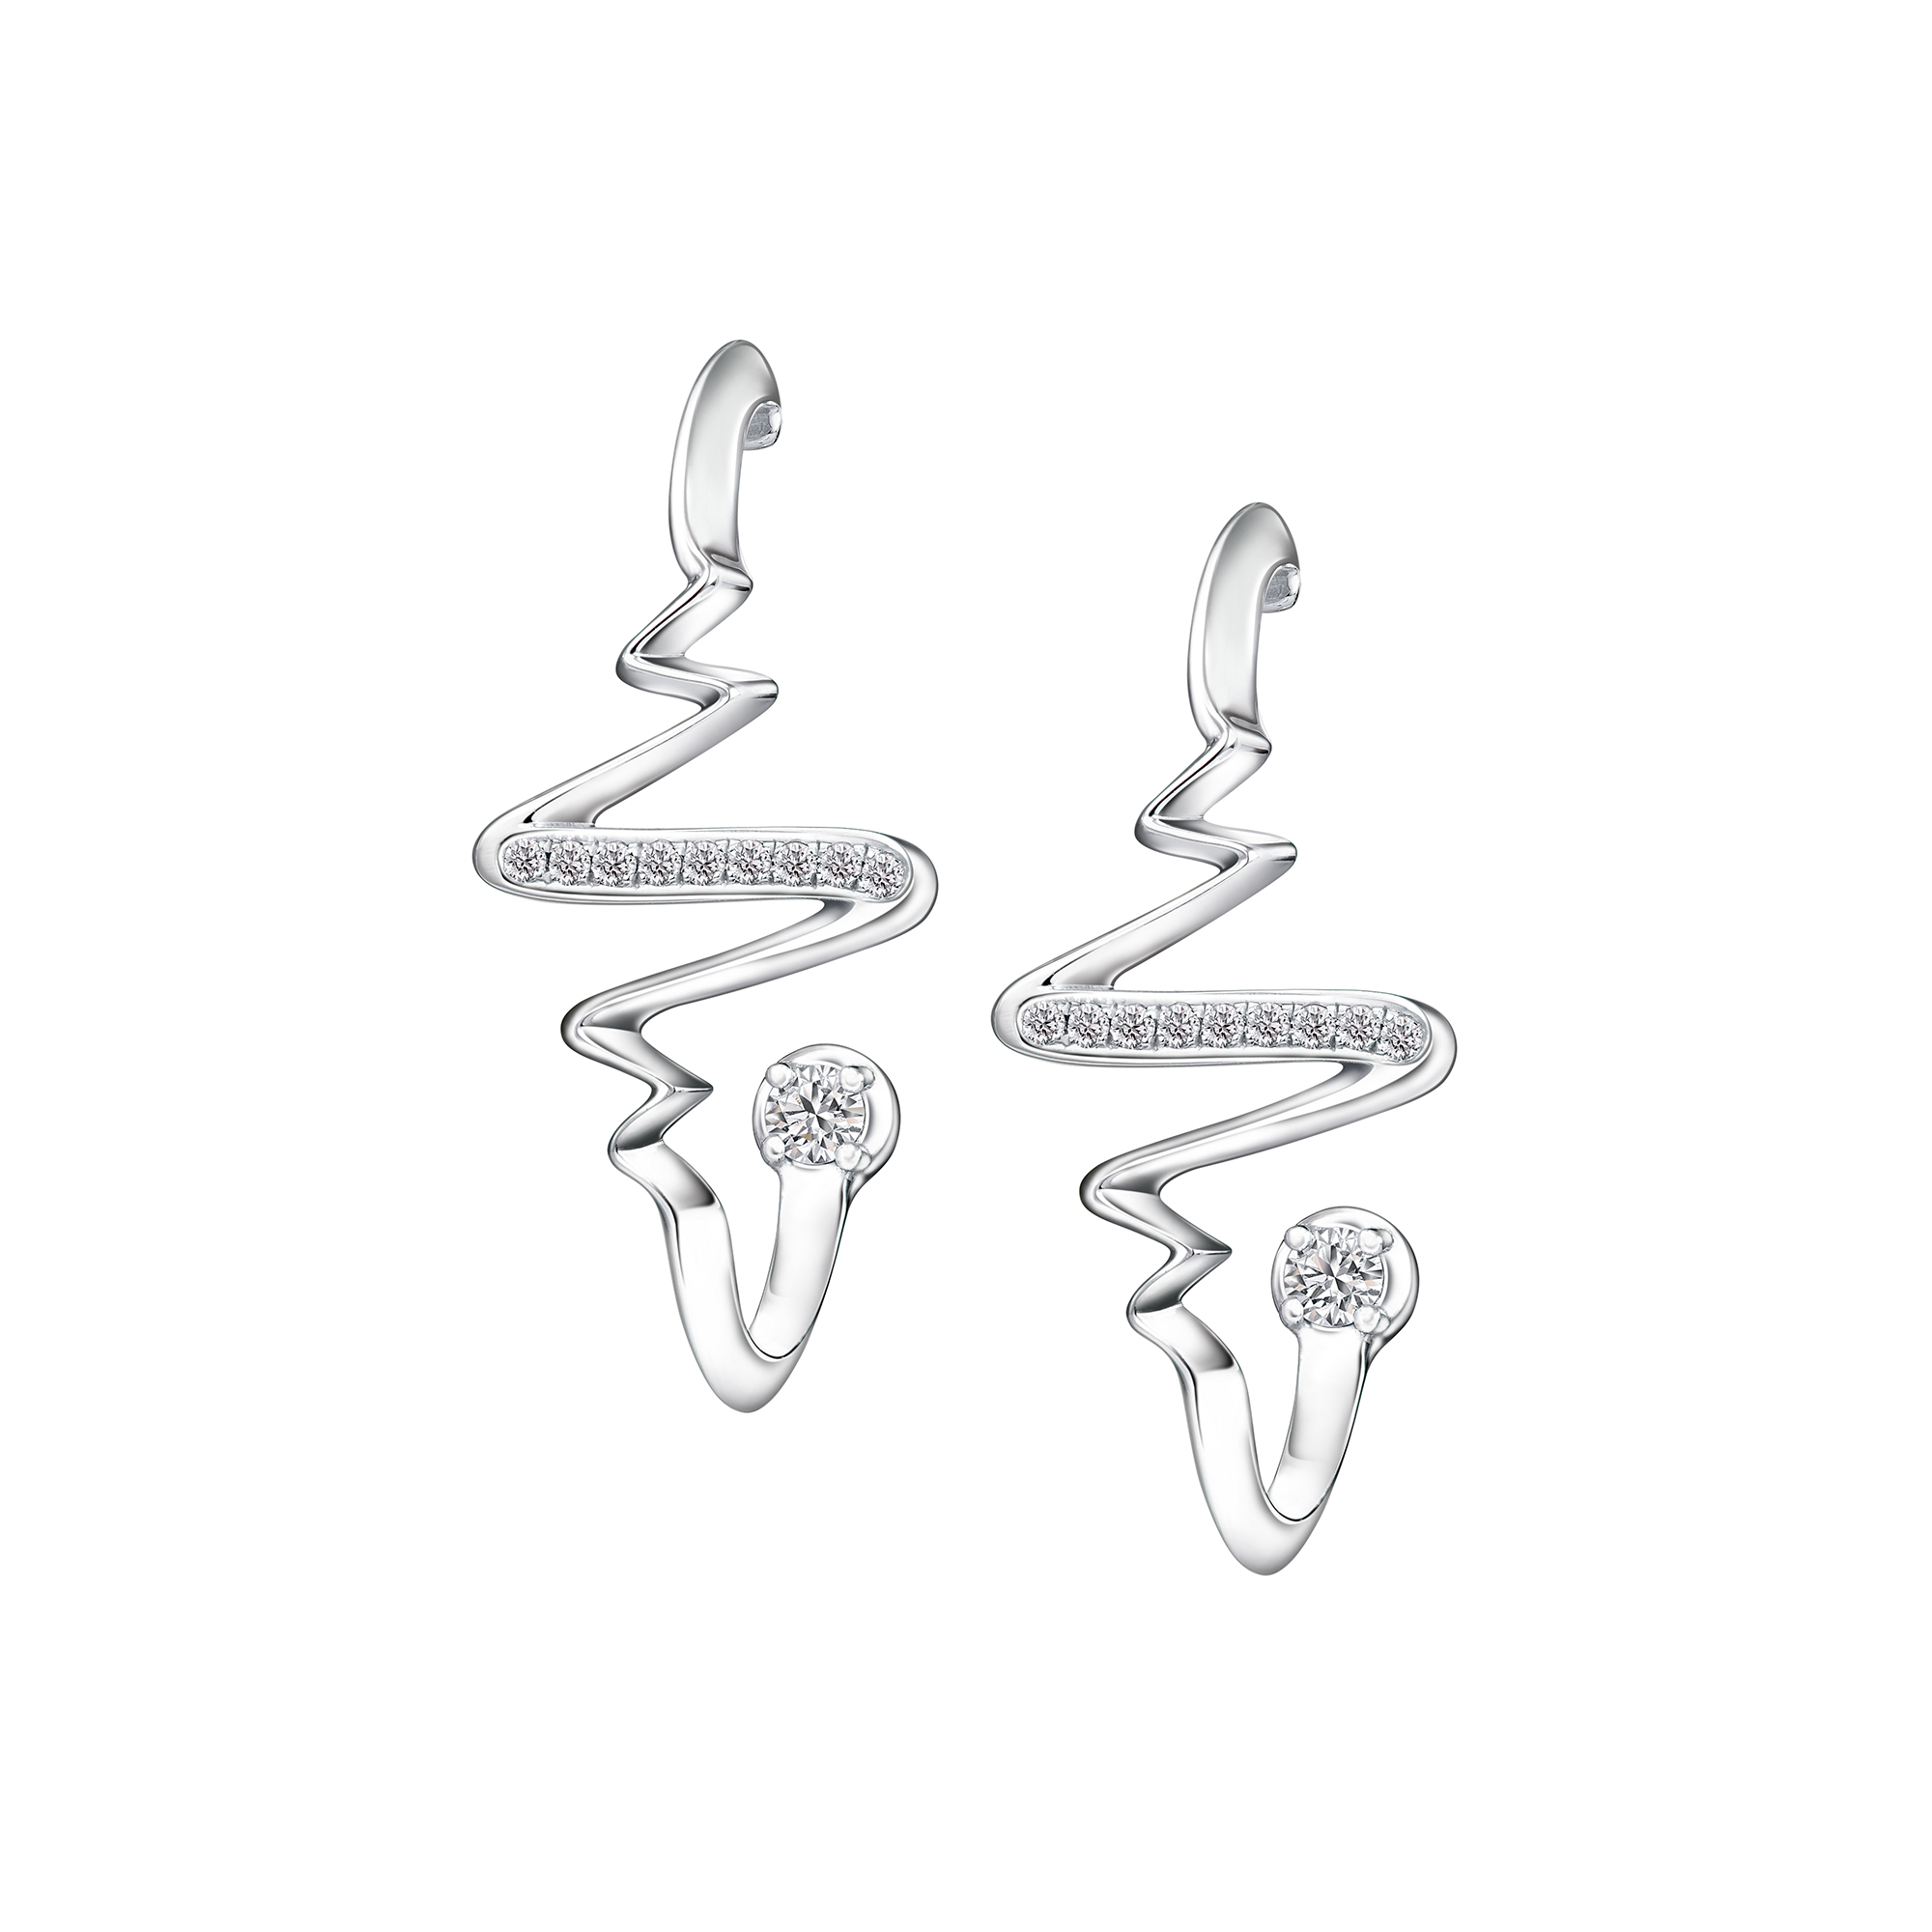 Soleluna AJYLE Rhythm Diamond Earrings